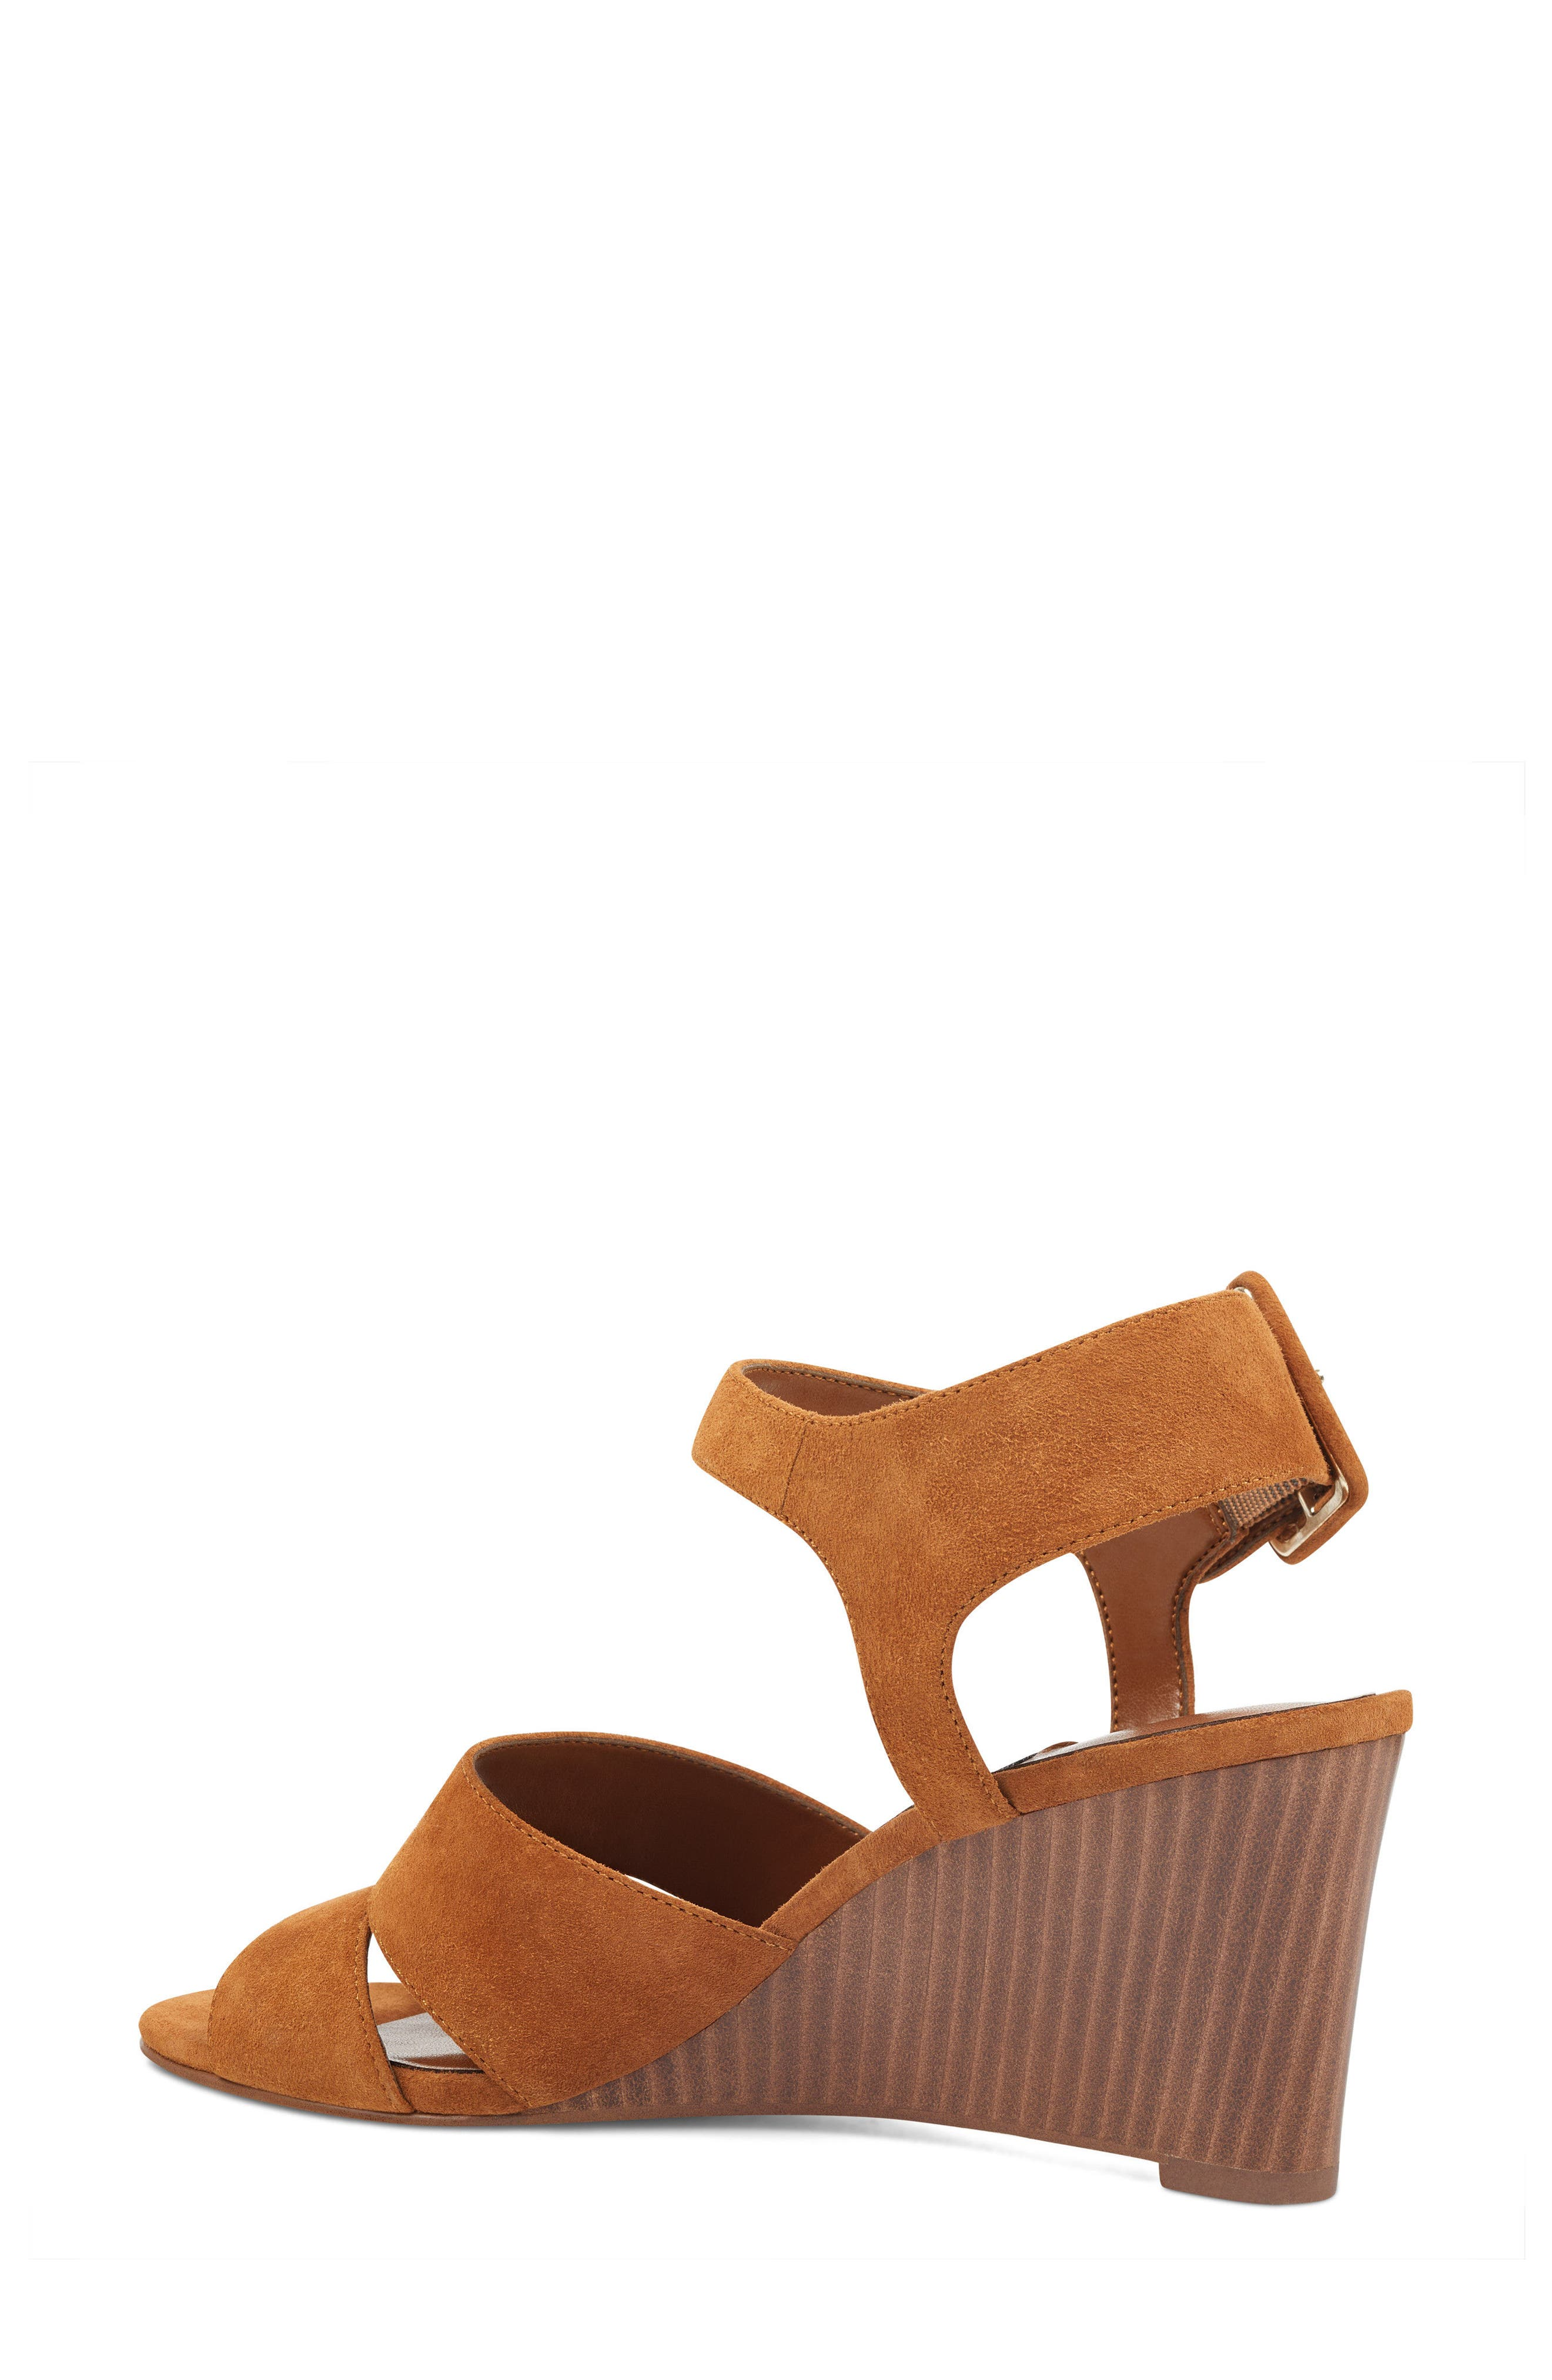 Vahan Wedge Sandal,                             Alternate thumbnail 2, color,                             Dark Natural Suede